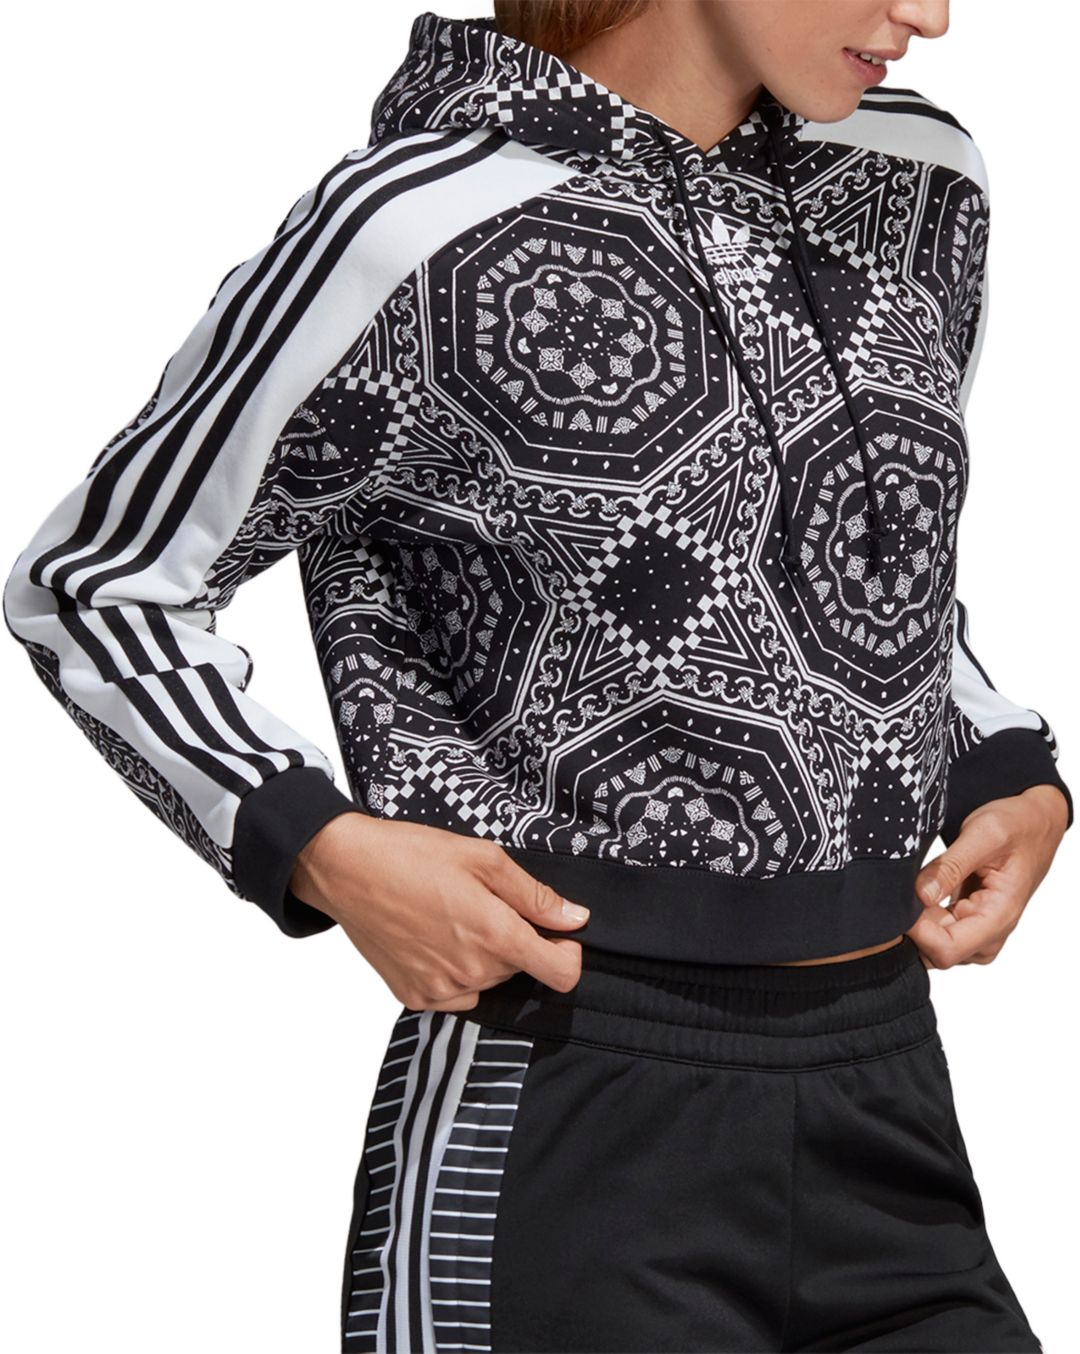 979240dd1b4 adidas Originals Women's Printed Cropped Hoodie. noImageFound. Previous